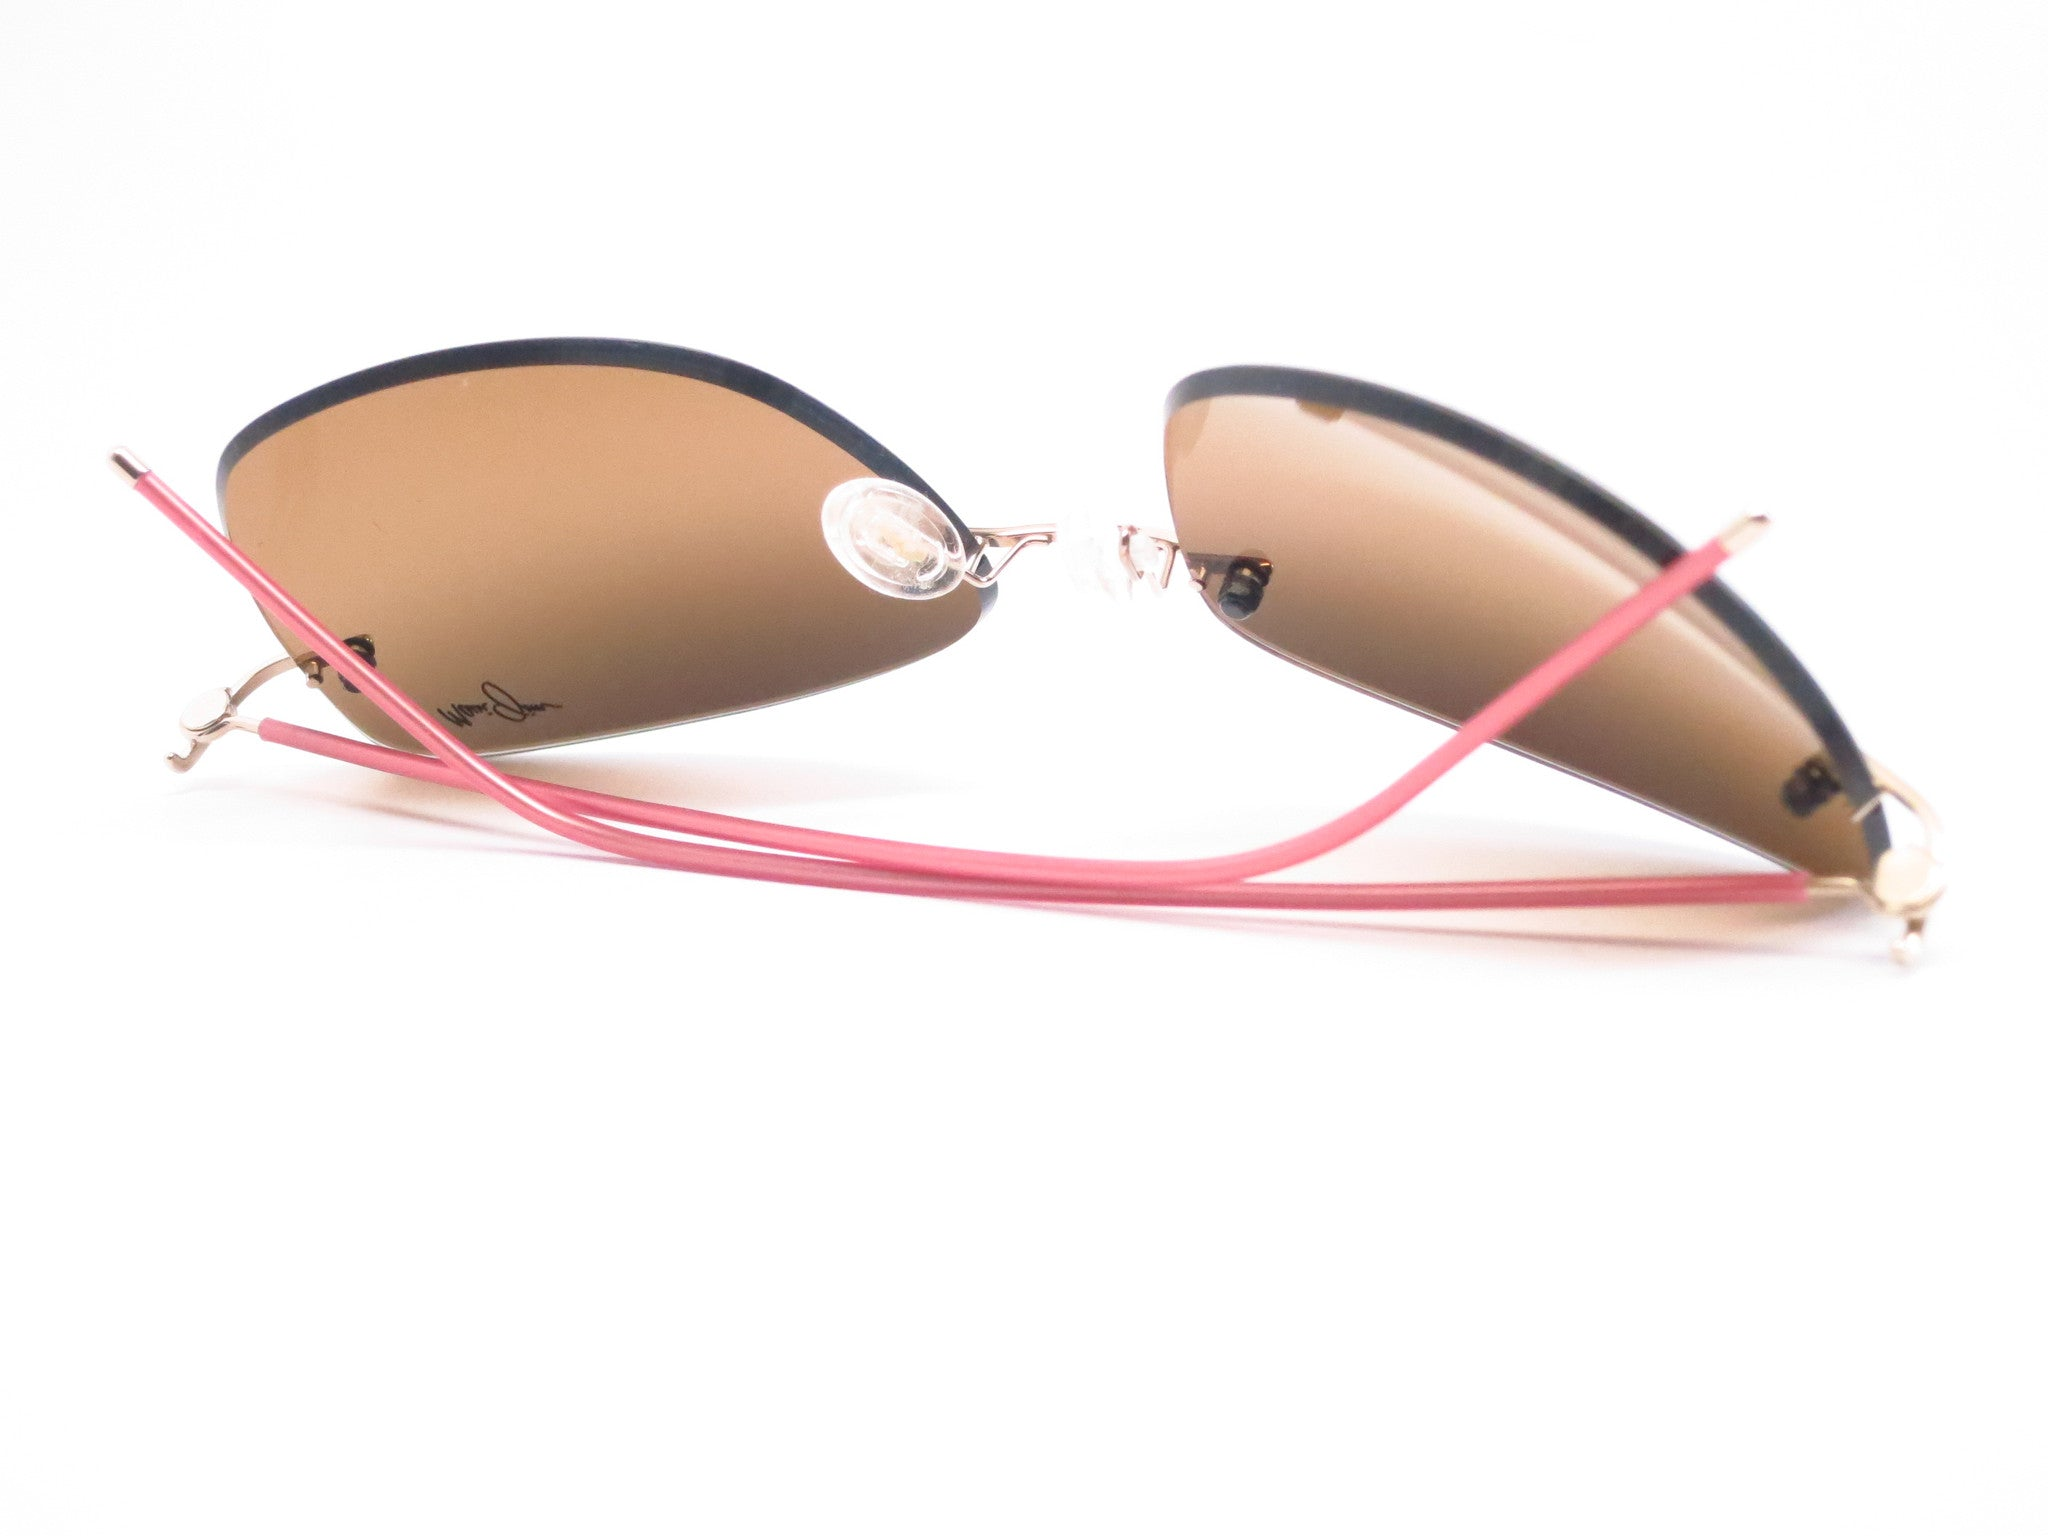 e17a93f0e88e ... Maui Jim Apapane MJ HS717-16 Gold Pink sleeve Polarized Sunglasses -  Eye Heart